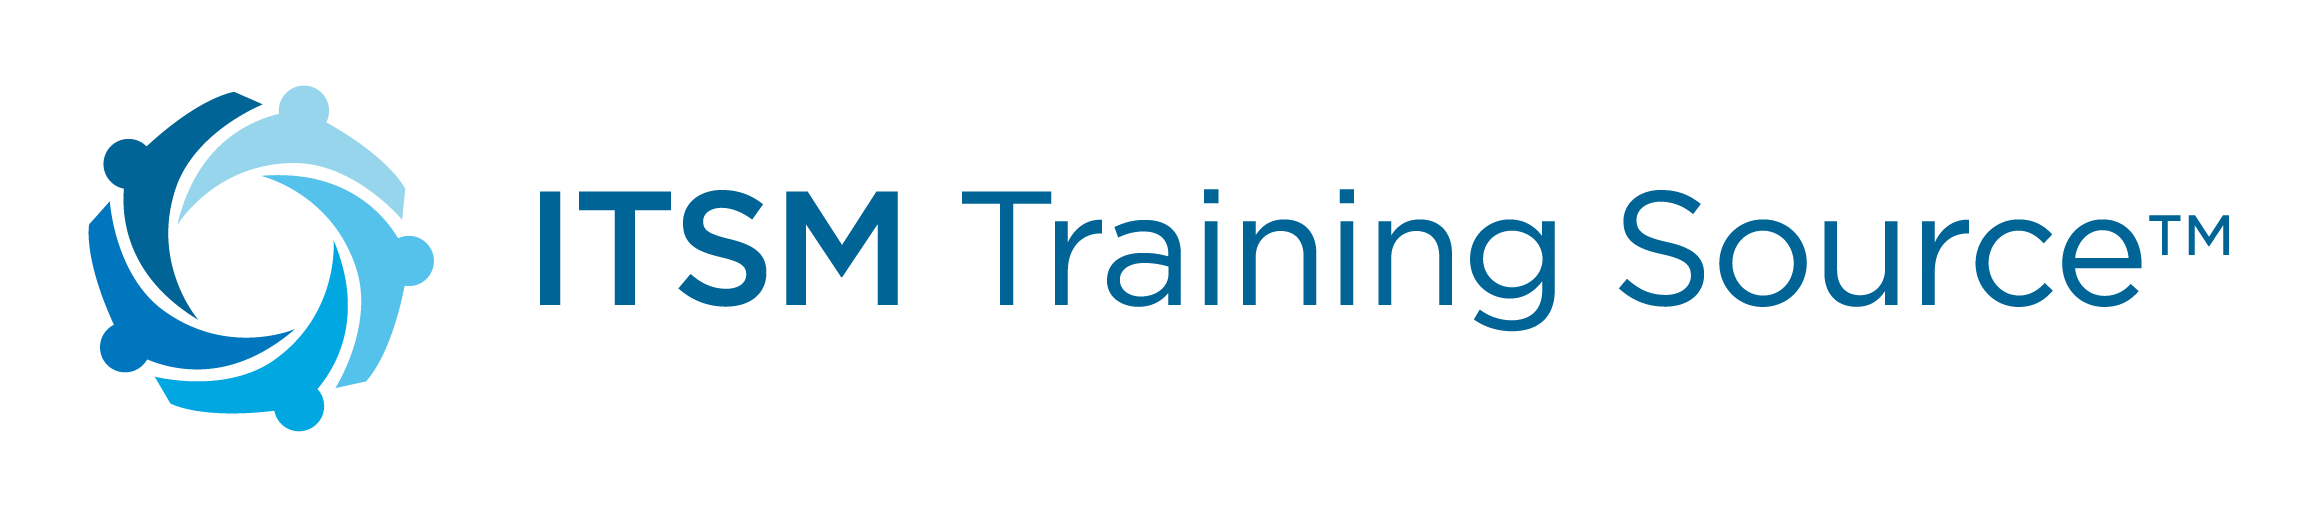 ITSM Training Source LLC